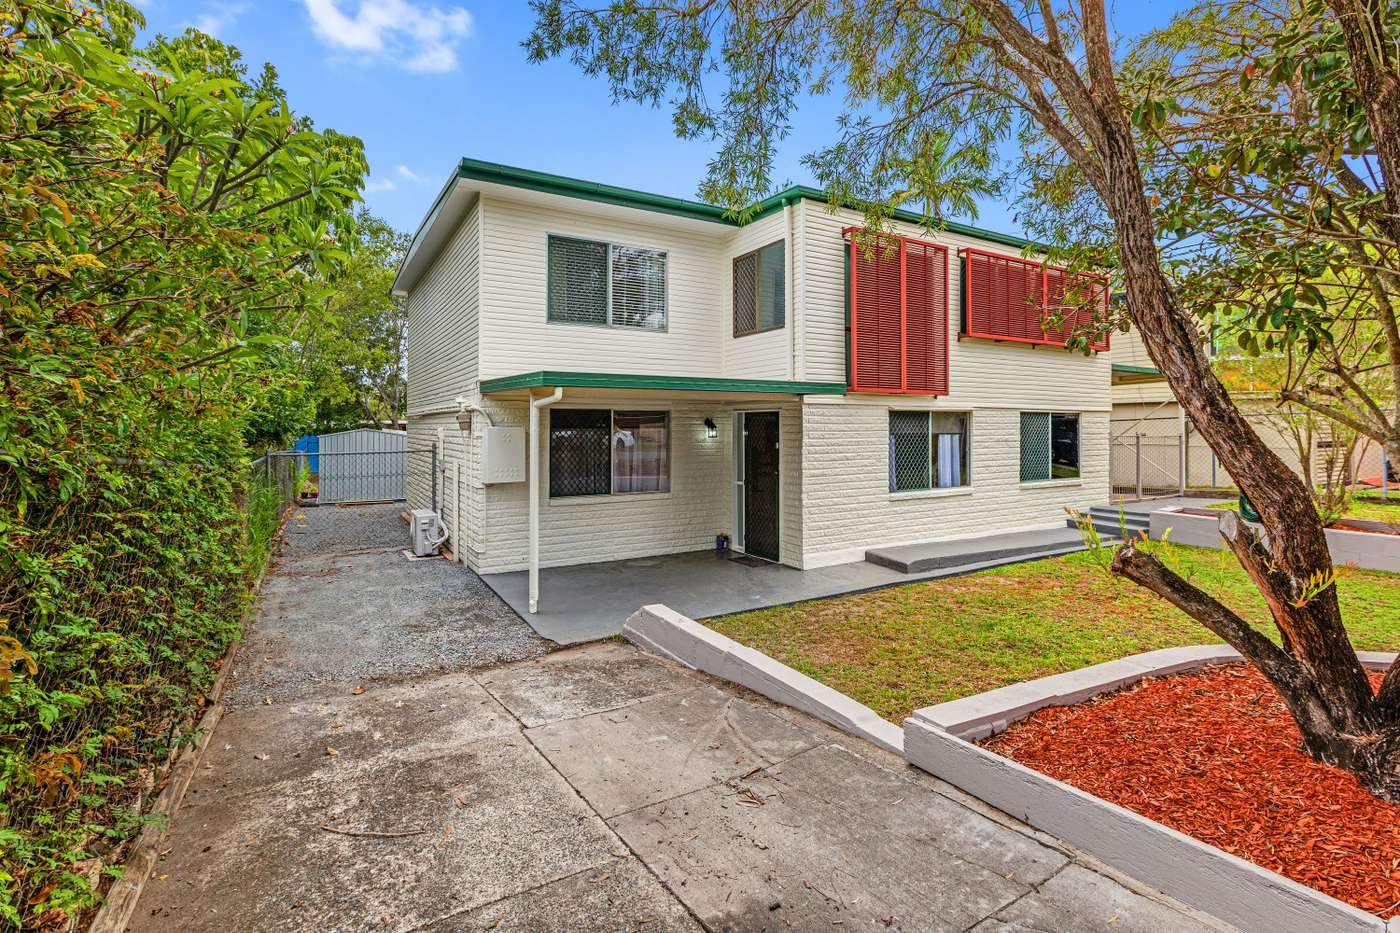 Main view of Homely house listing, 37 Myra Street, Kingston, QLD 4114